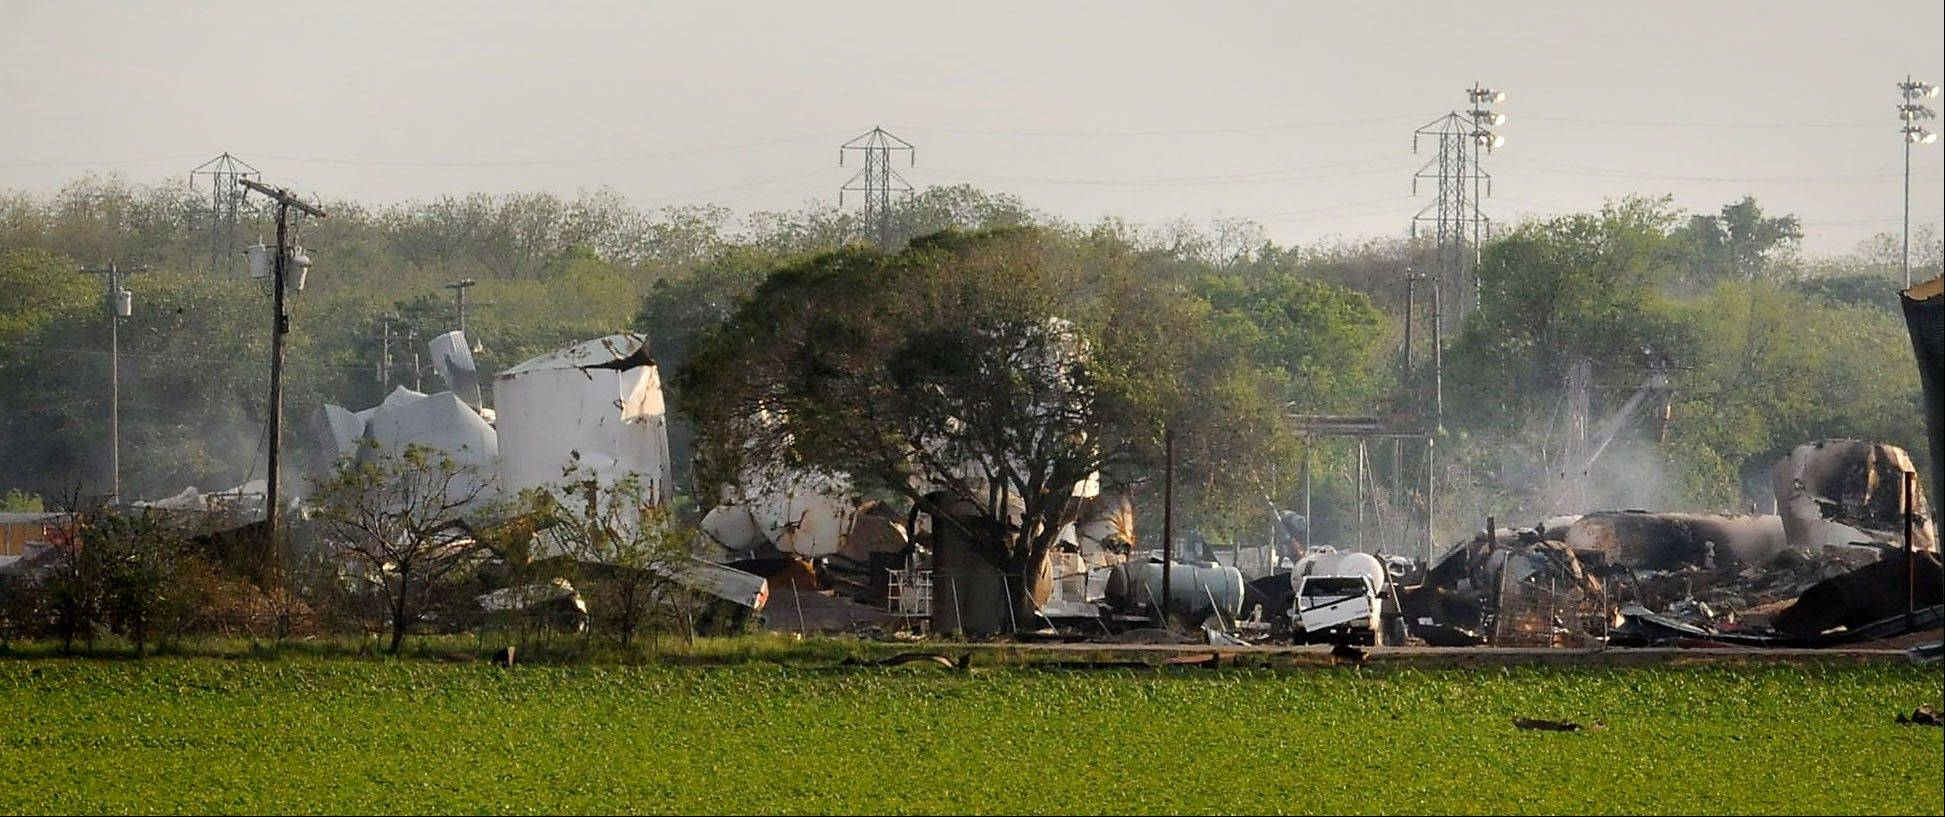 Mangled debris of a fertilizer plant are seen Thursday, April 18, 2013, a day after an explosion leveled the plant in West, Texas. The bodies of 12 people have been recovered. Another 200 other people were injured, authorities said Friday.